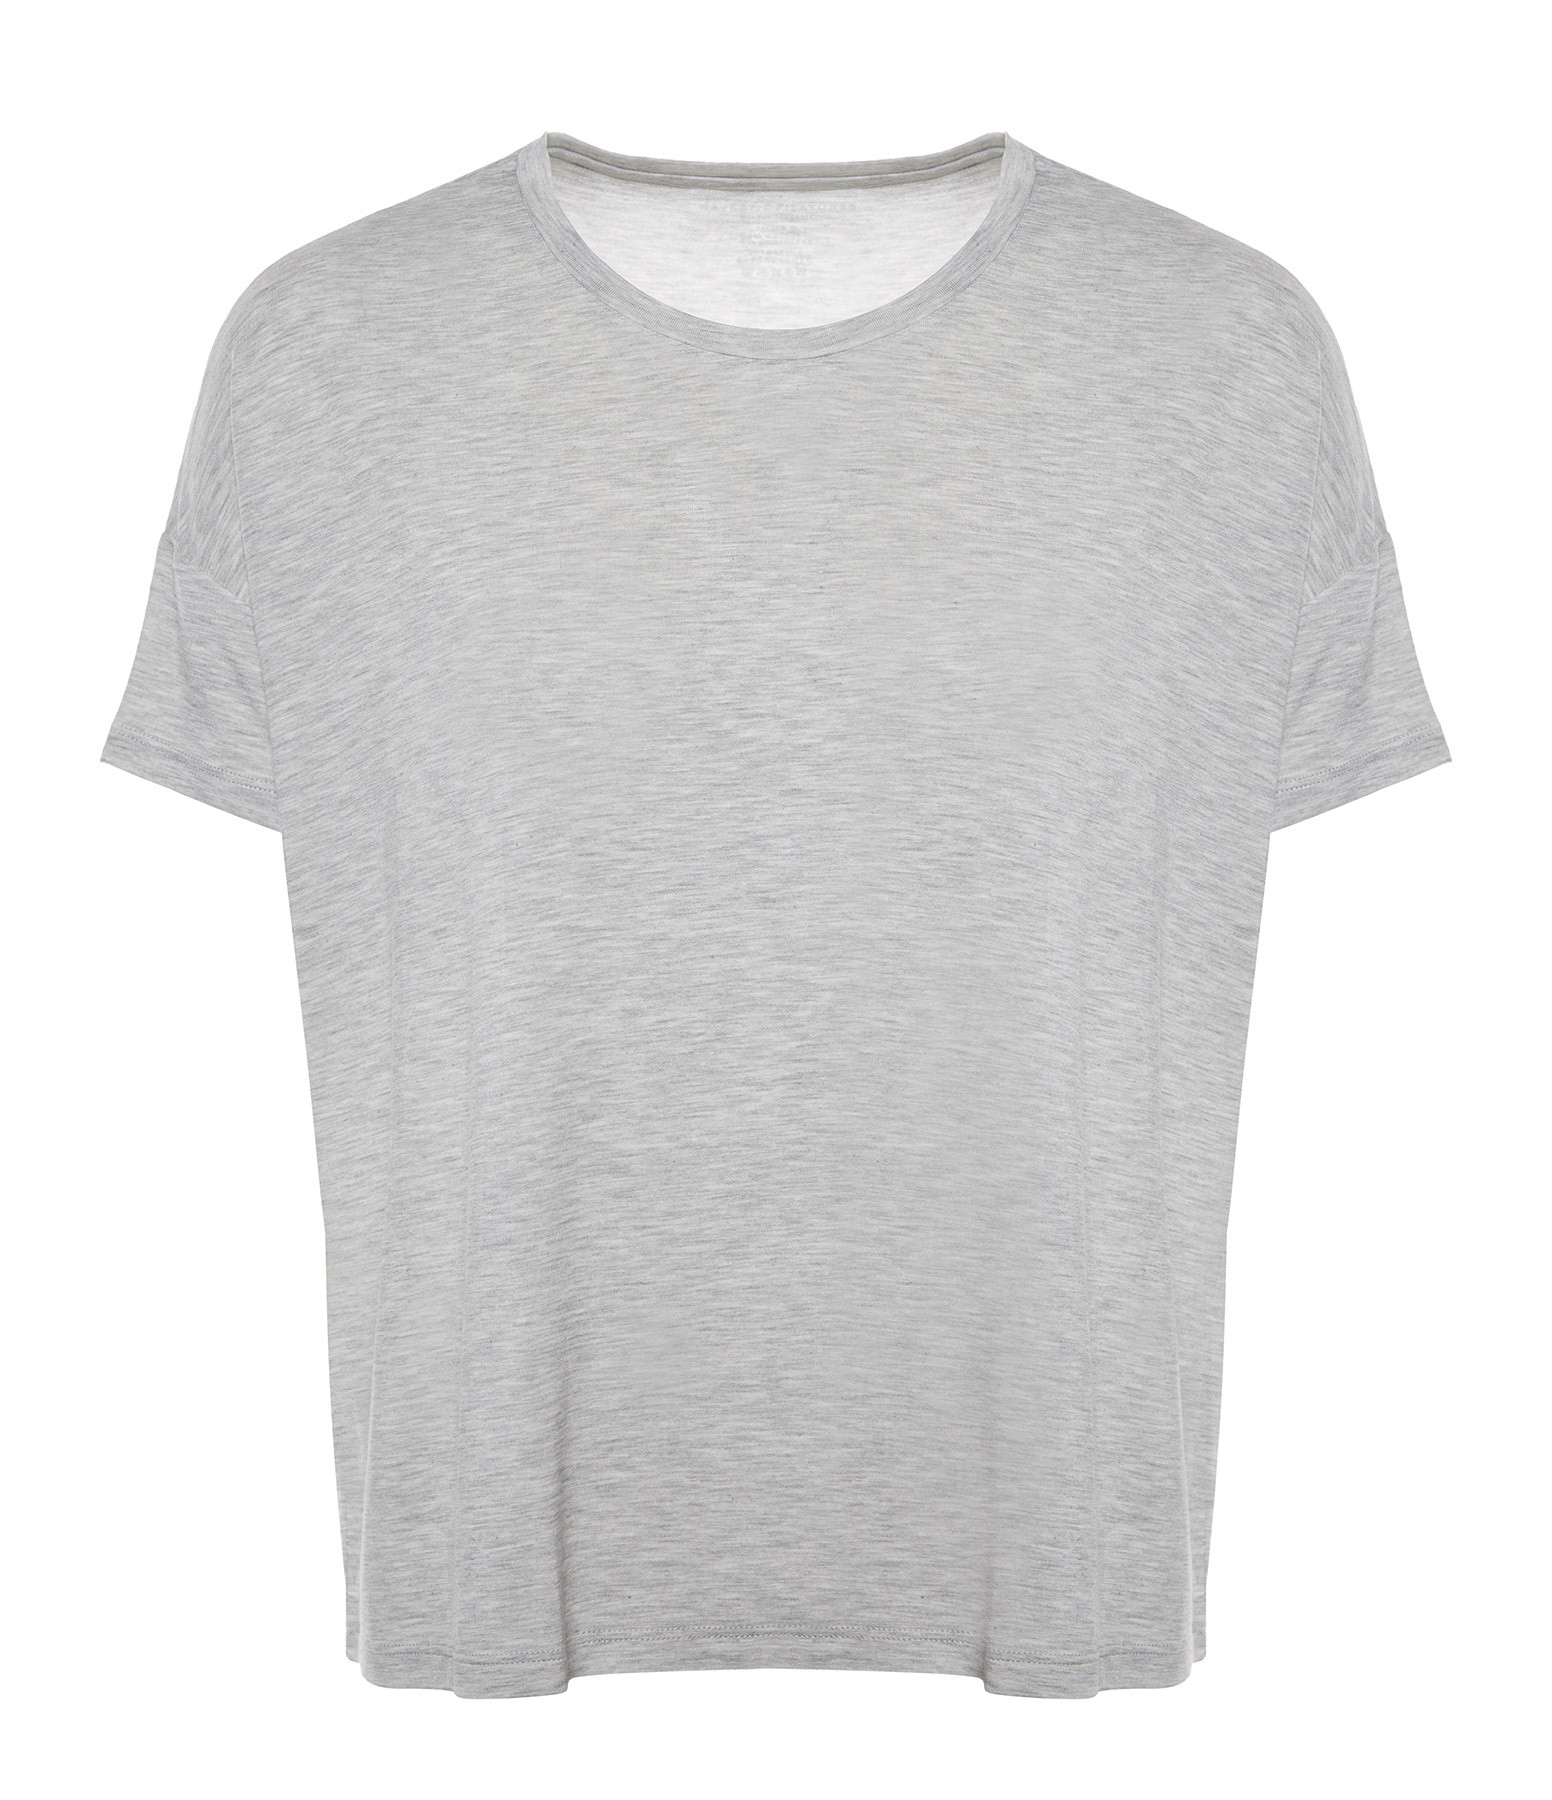 MAJESTIC FILATURES - Tee-shirt Col Rond Brume Chiné